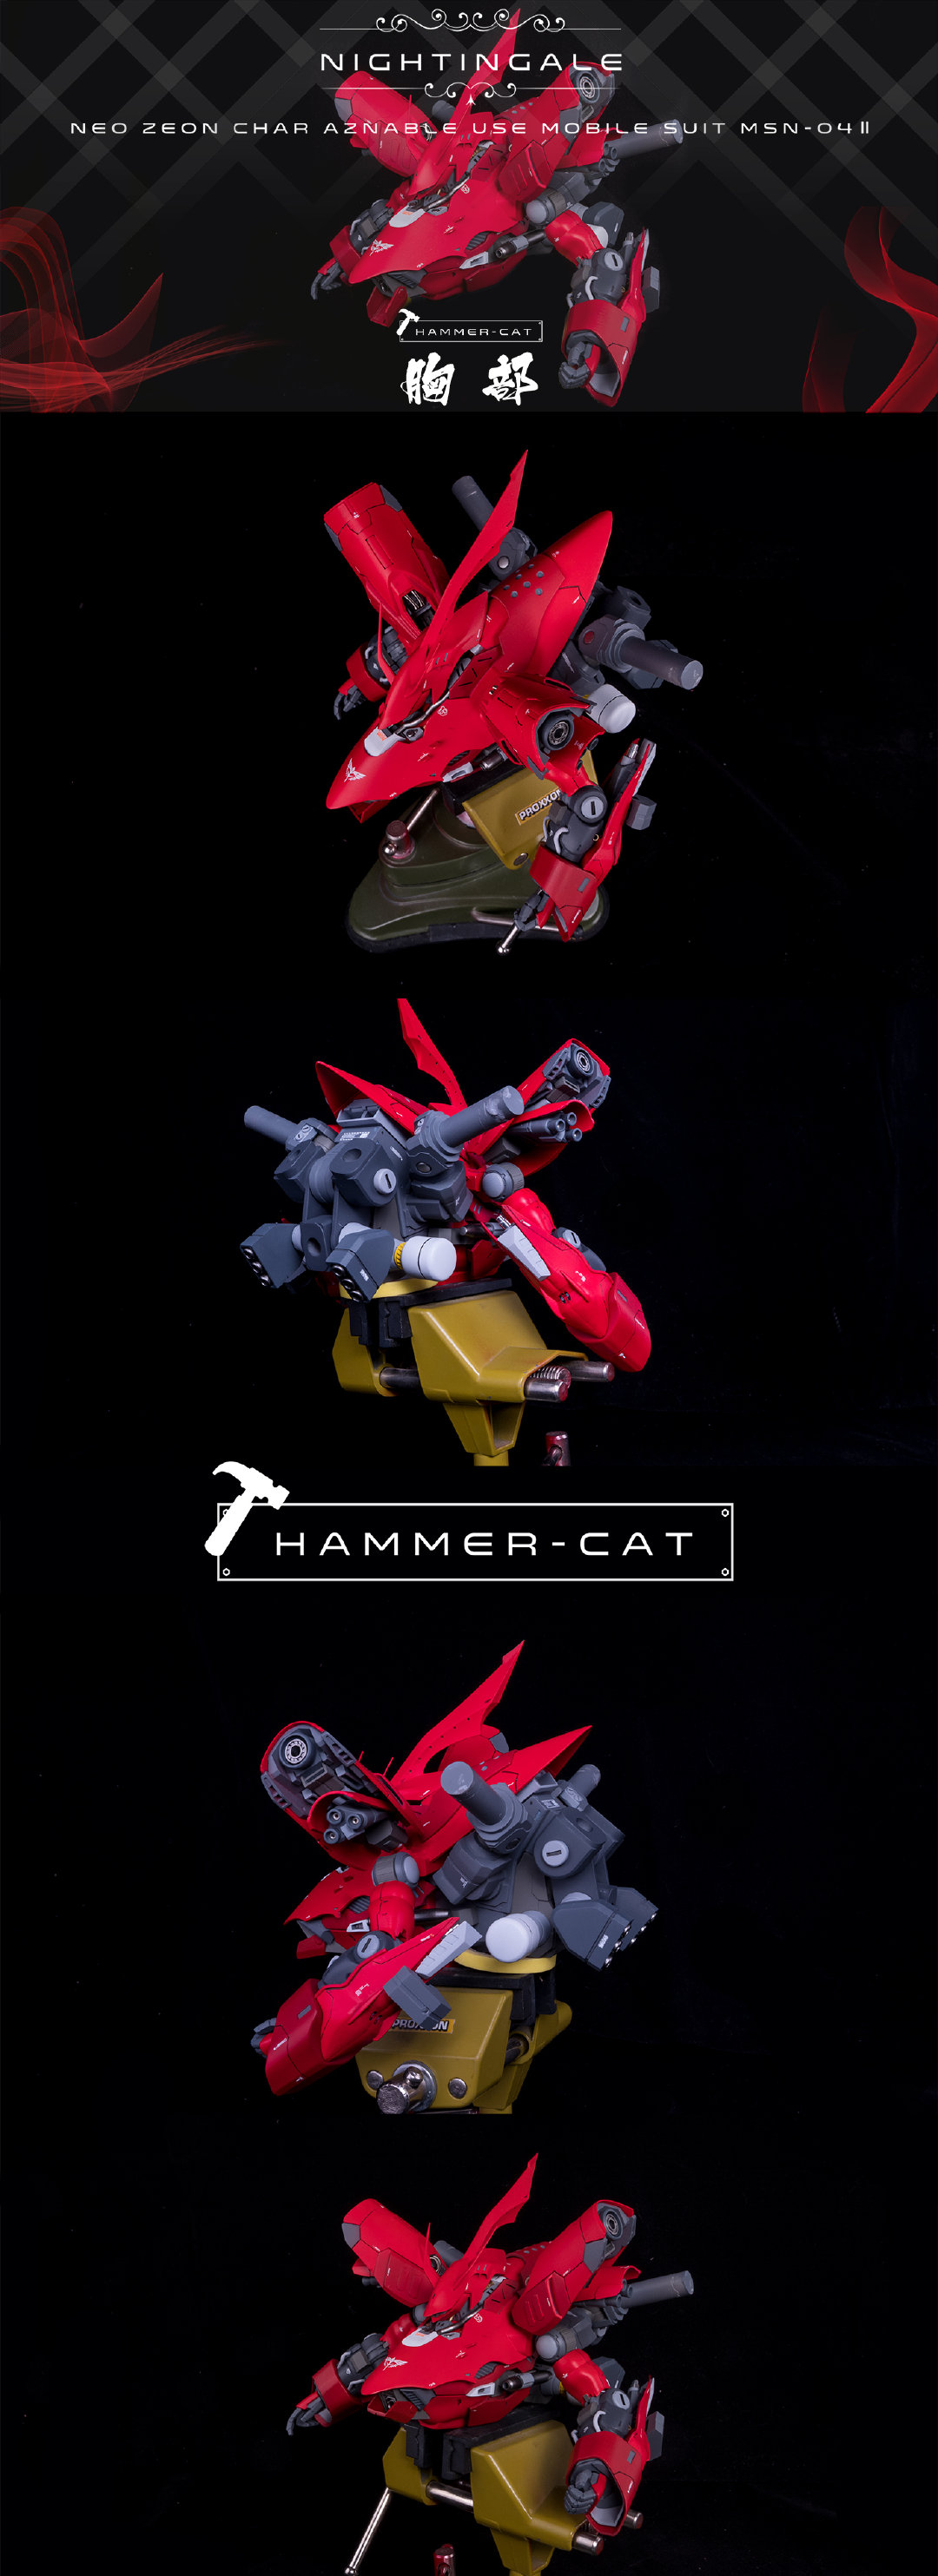 G503_G504_hammer_cat_nightingale_017.jpg